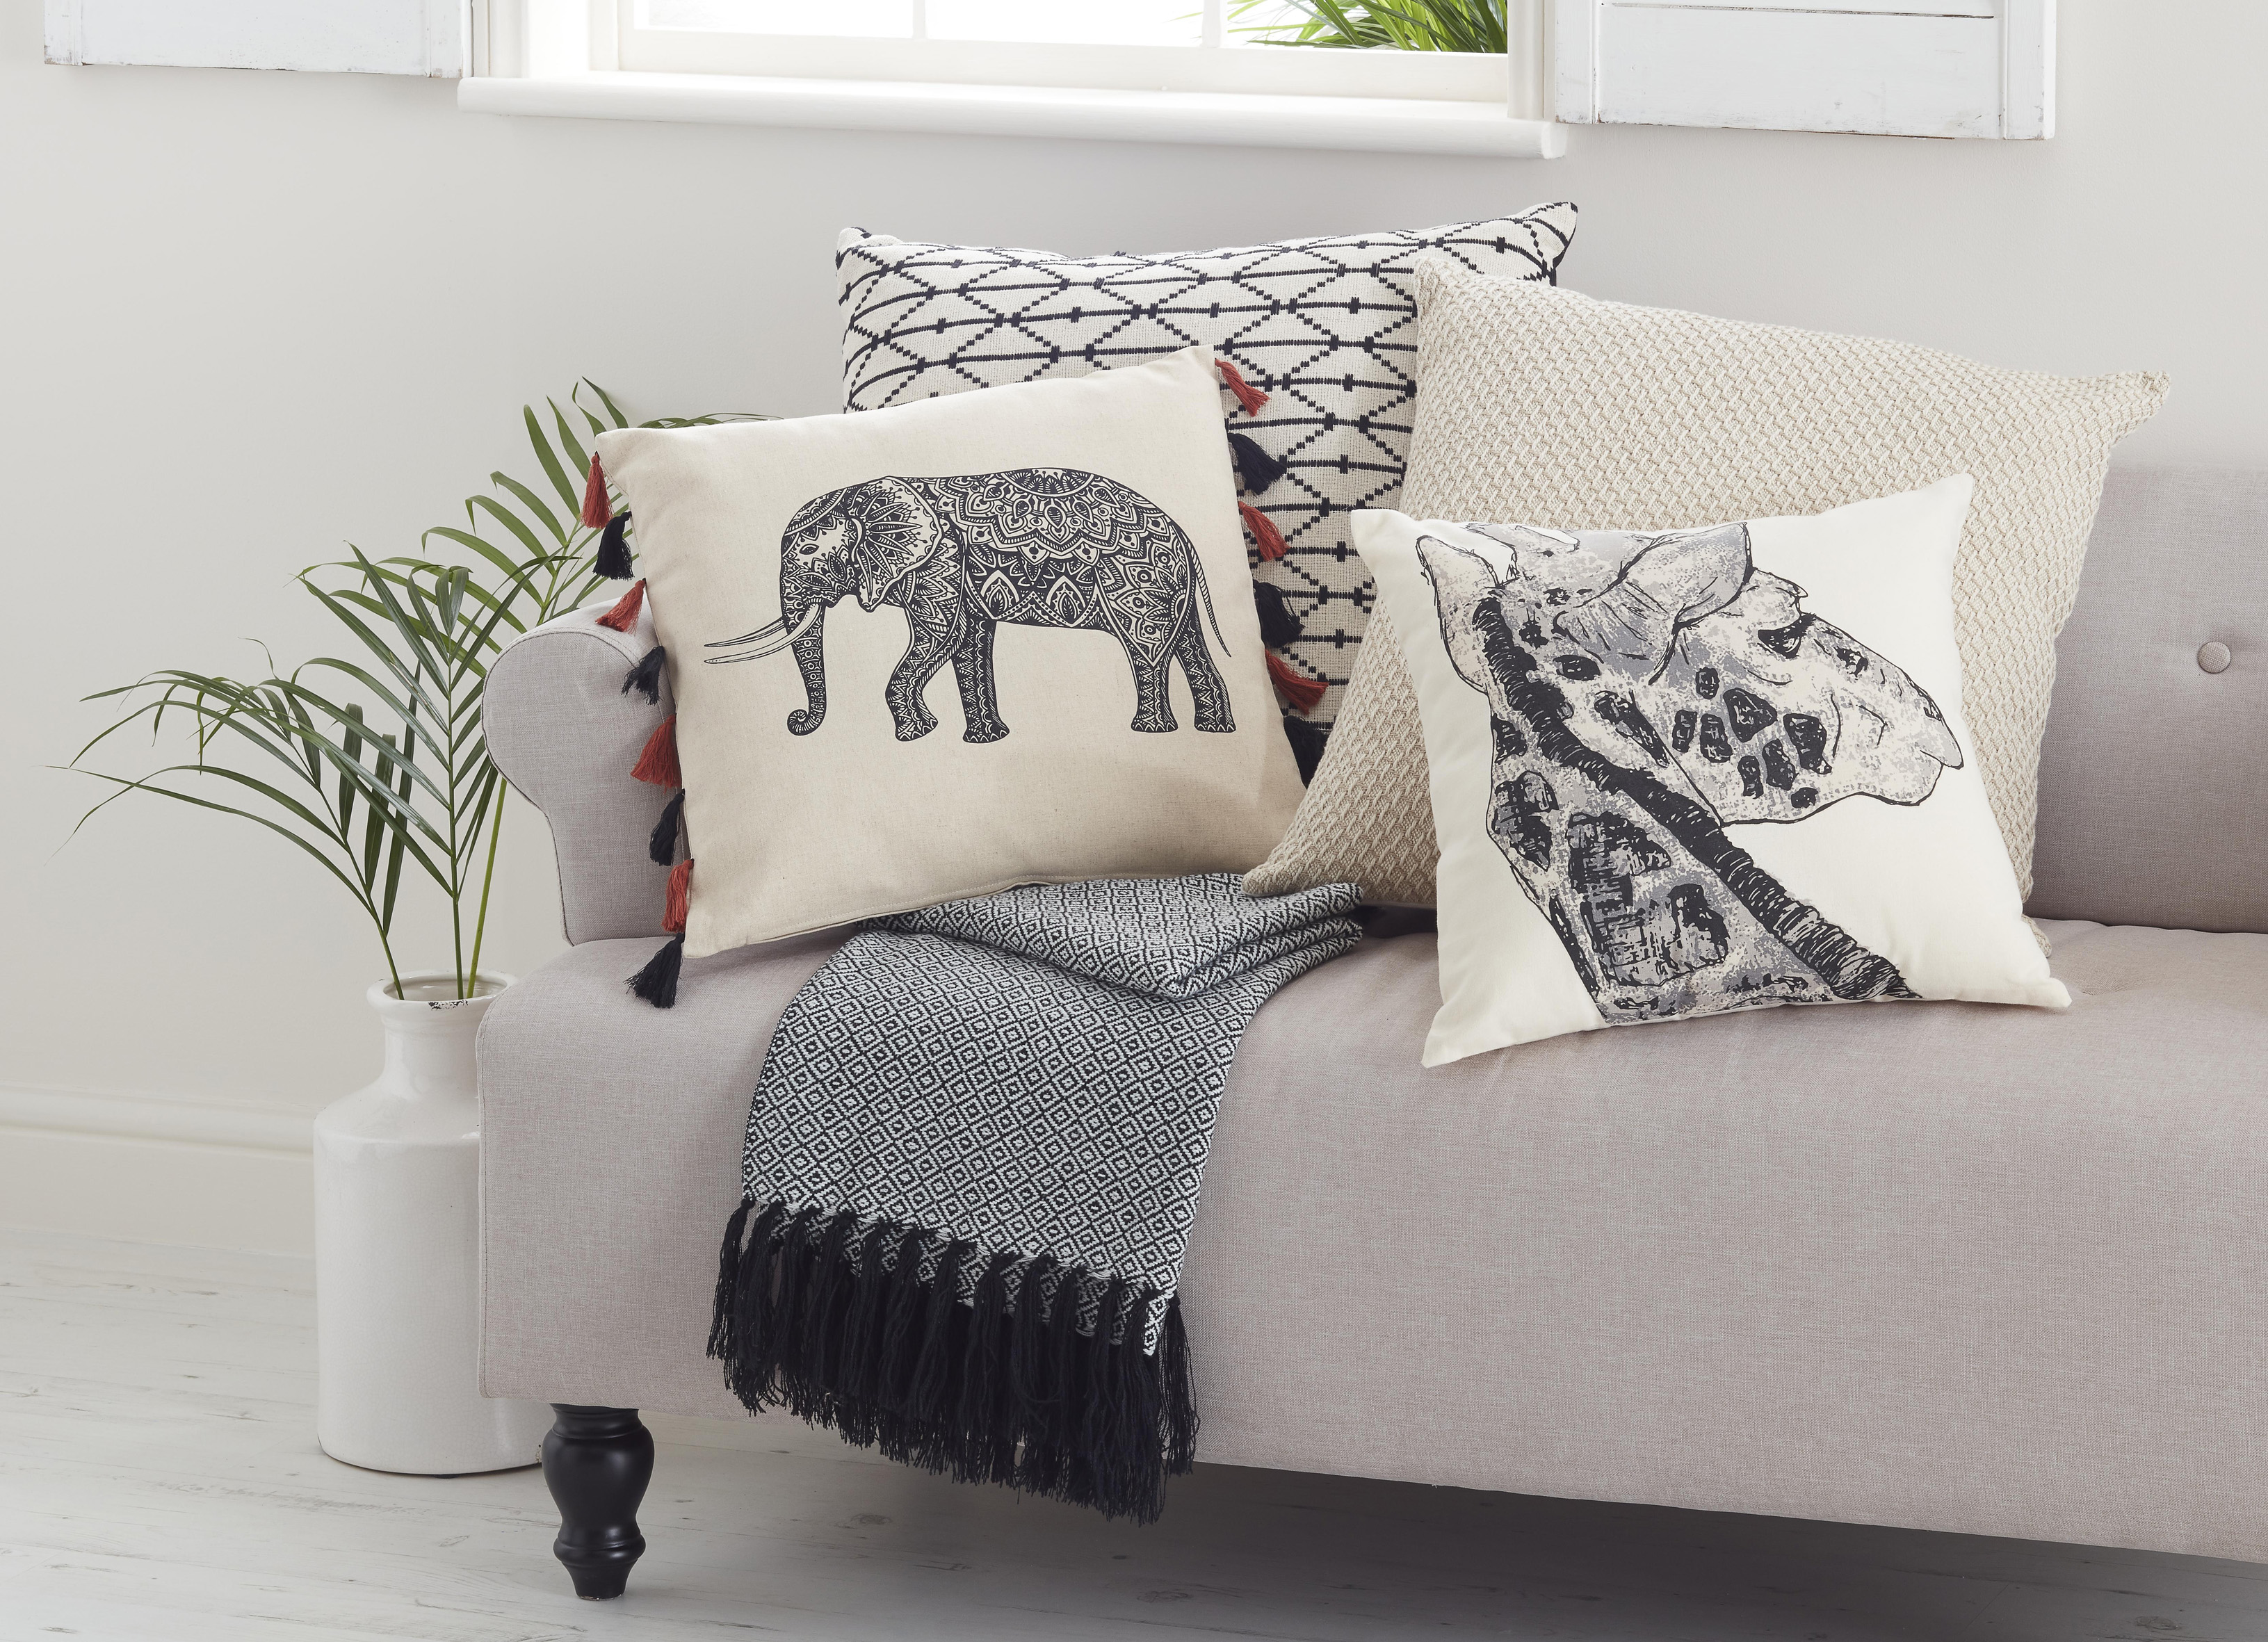 Orabelle Elephant Cushion, £8; Cintia Giraffe Cushion, £5, B&Q (B&Q/PA)